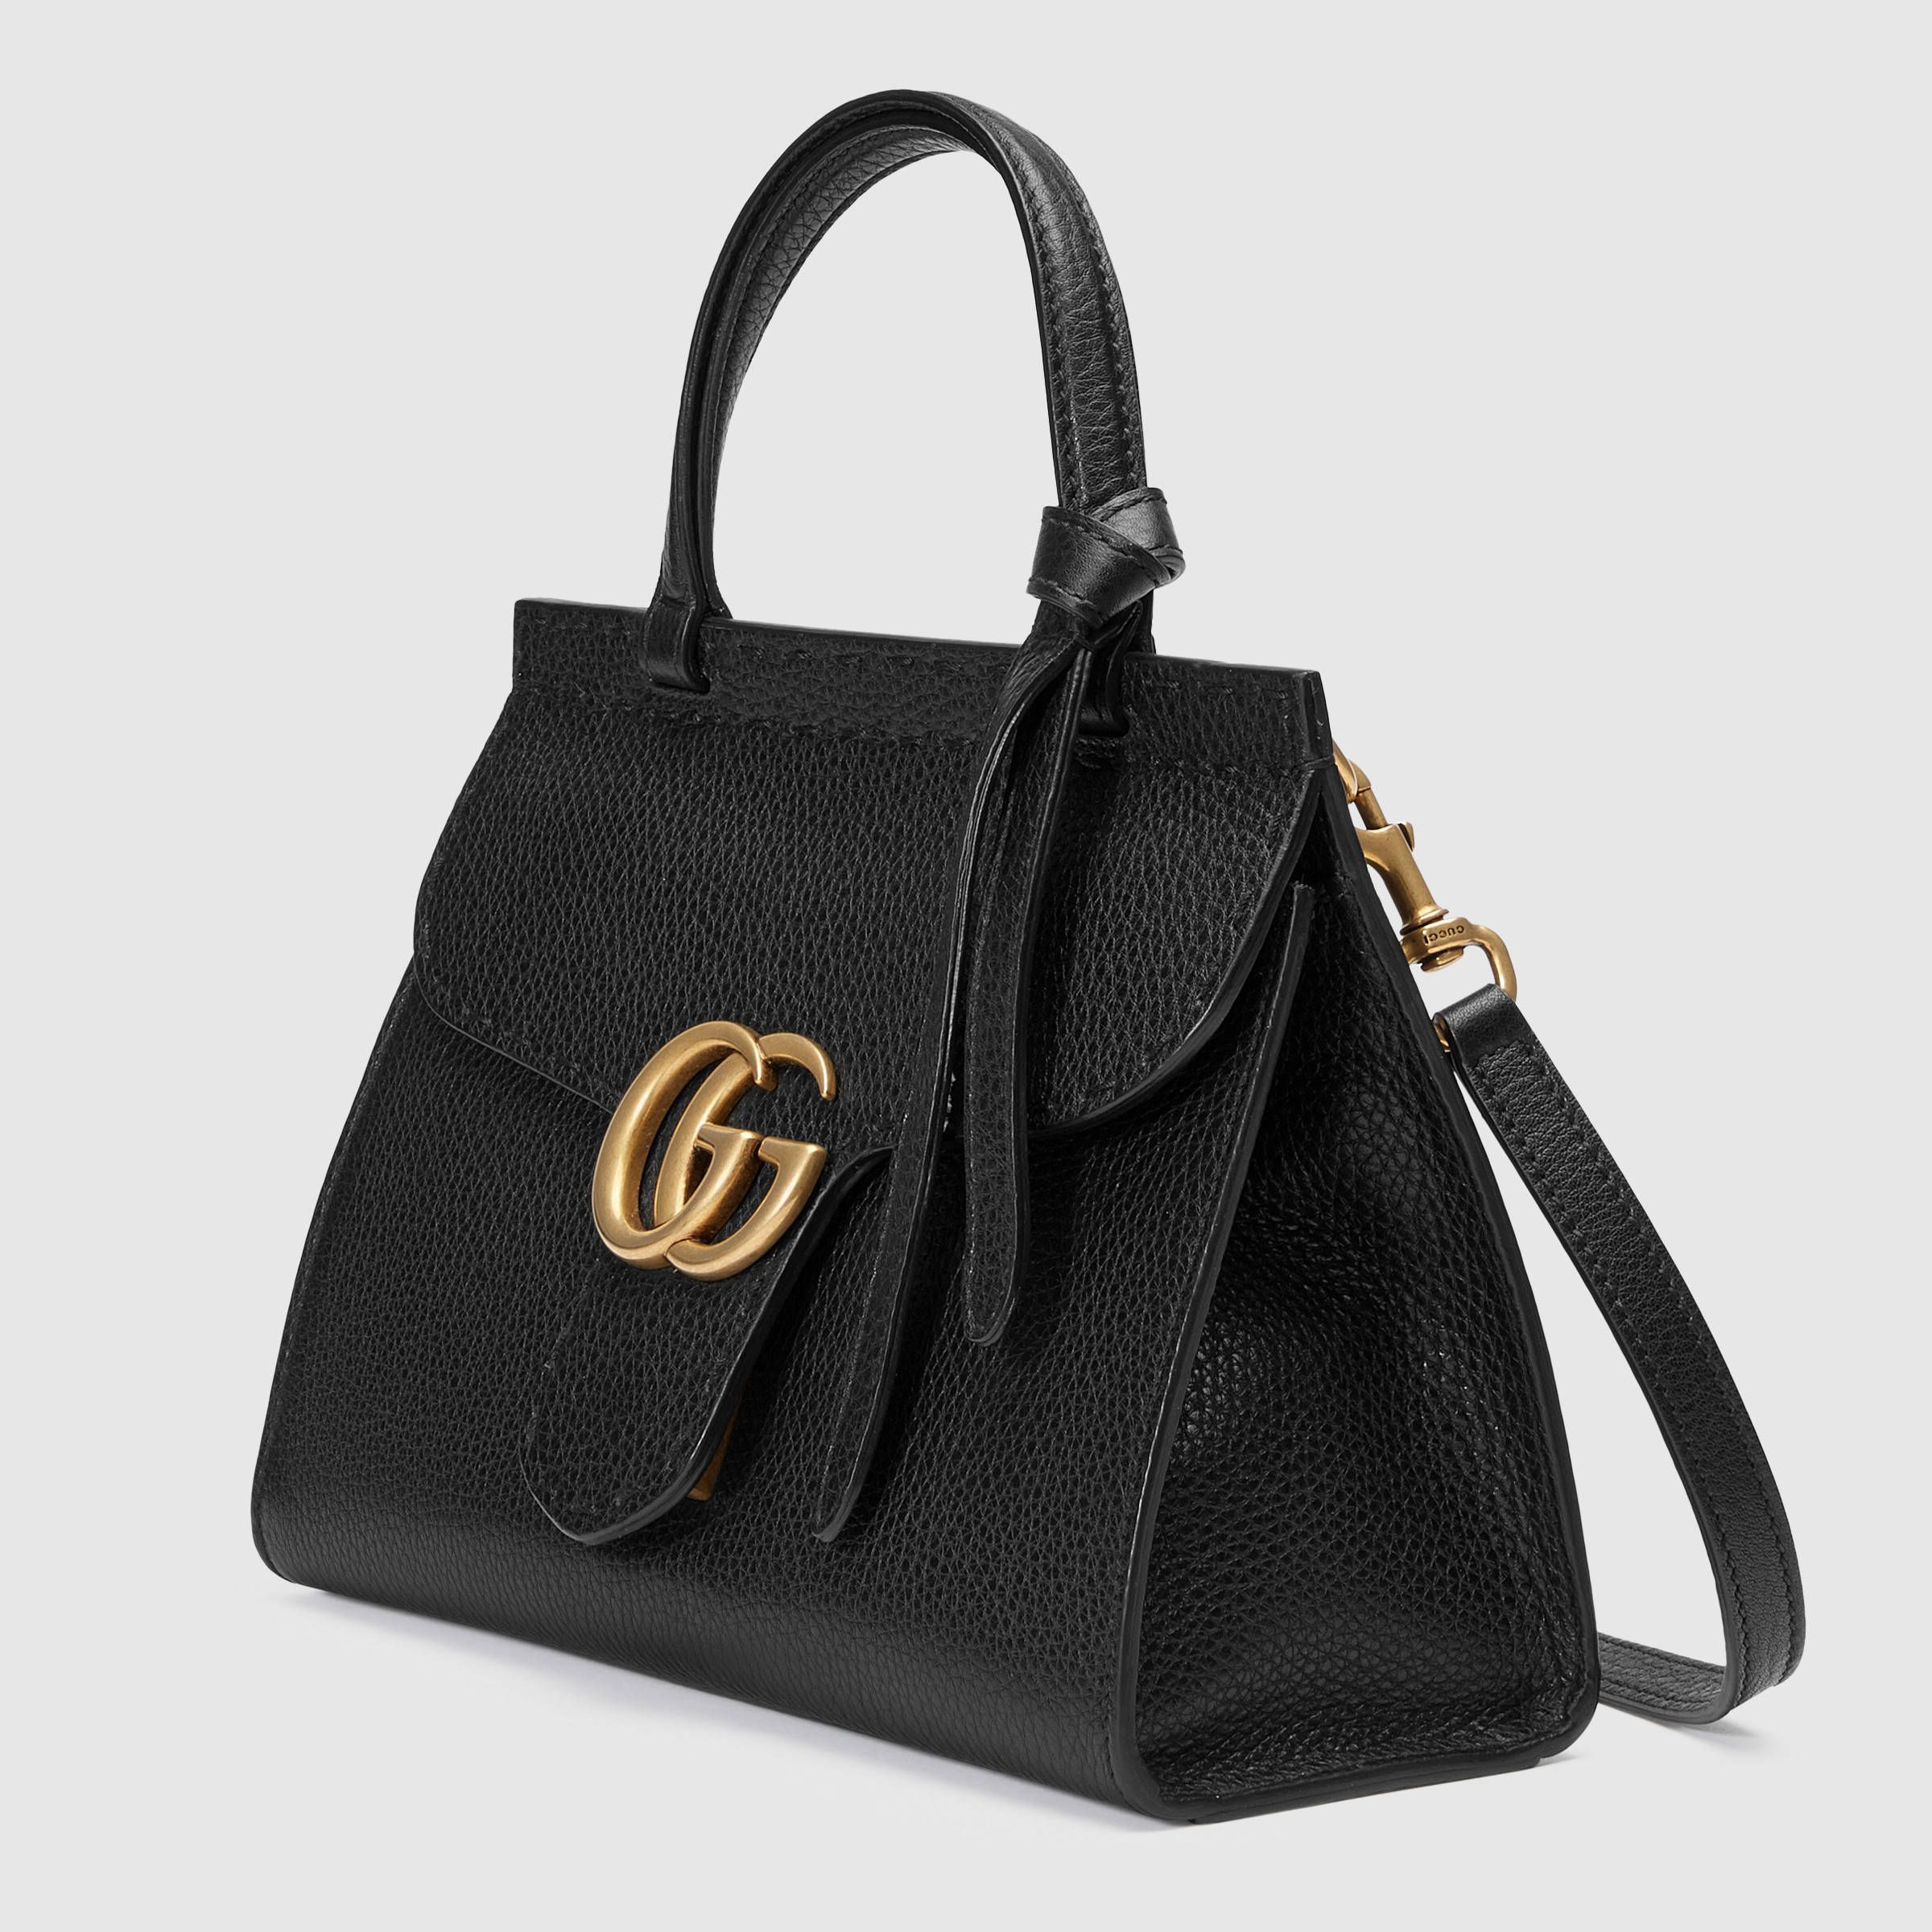 ff7fdc3f719a GG Marmont leather top handle mini bag in 2019 | Bags | Bags, Gg ...